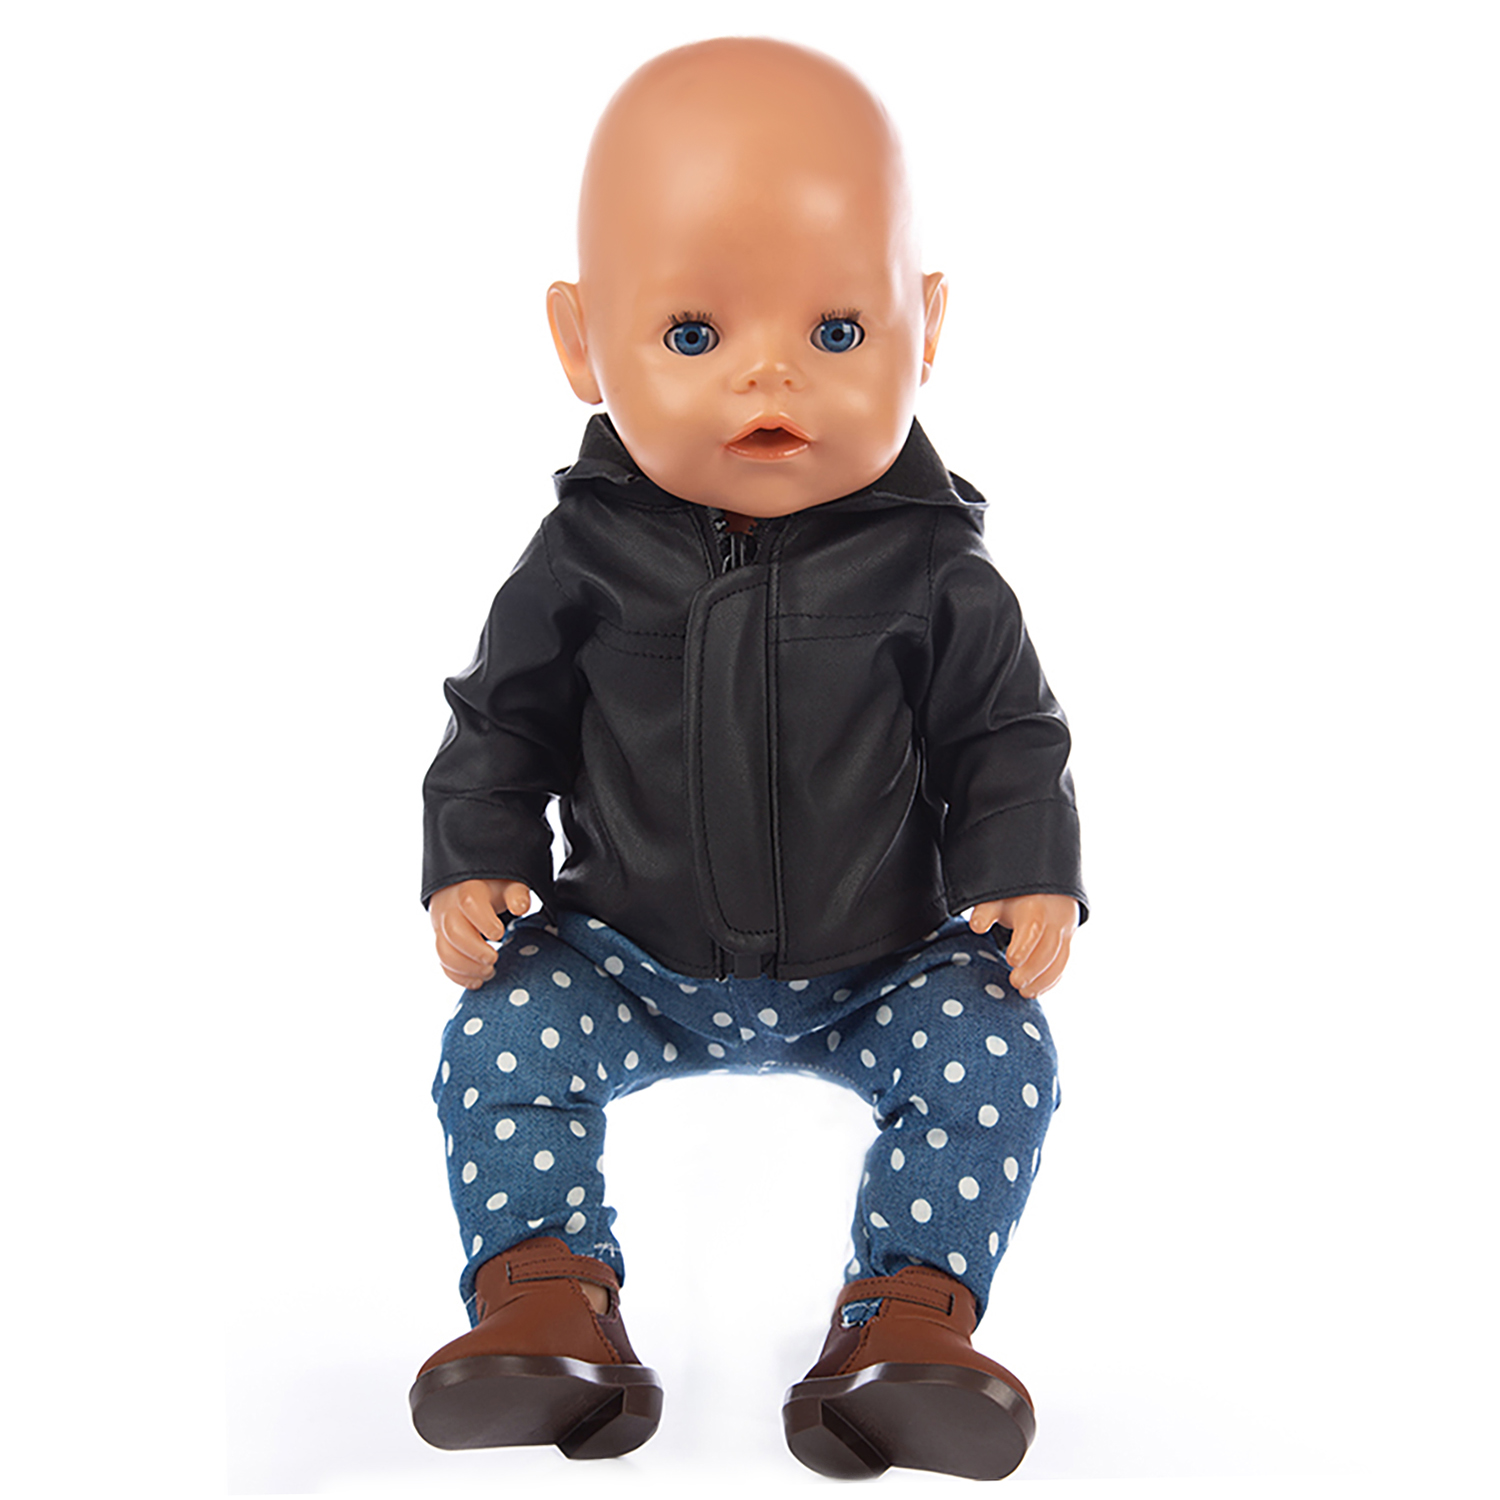 Doll Clothes Accessories Born New Baby Fit 18 Inch 43cm Doll Black Purple Blue Red Leather Suit Clothes For Baby Birthday Gift